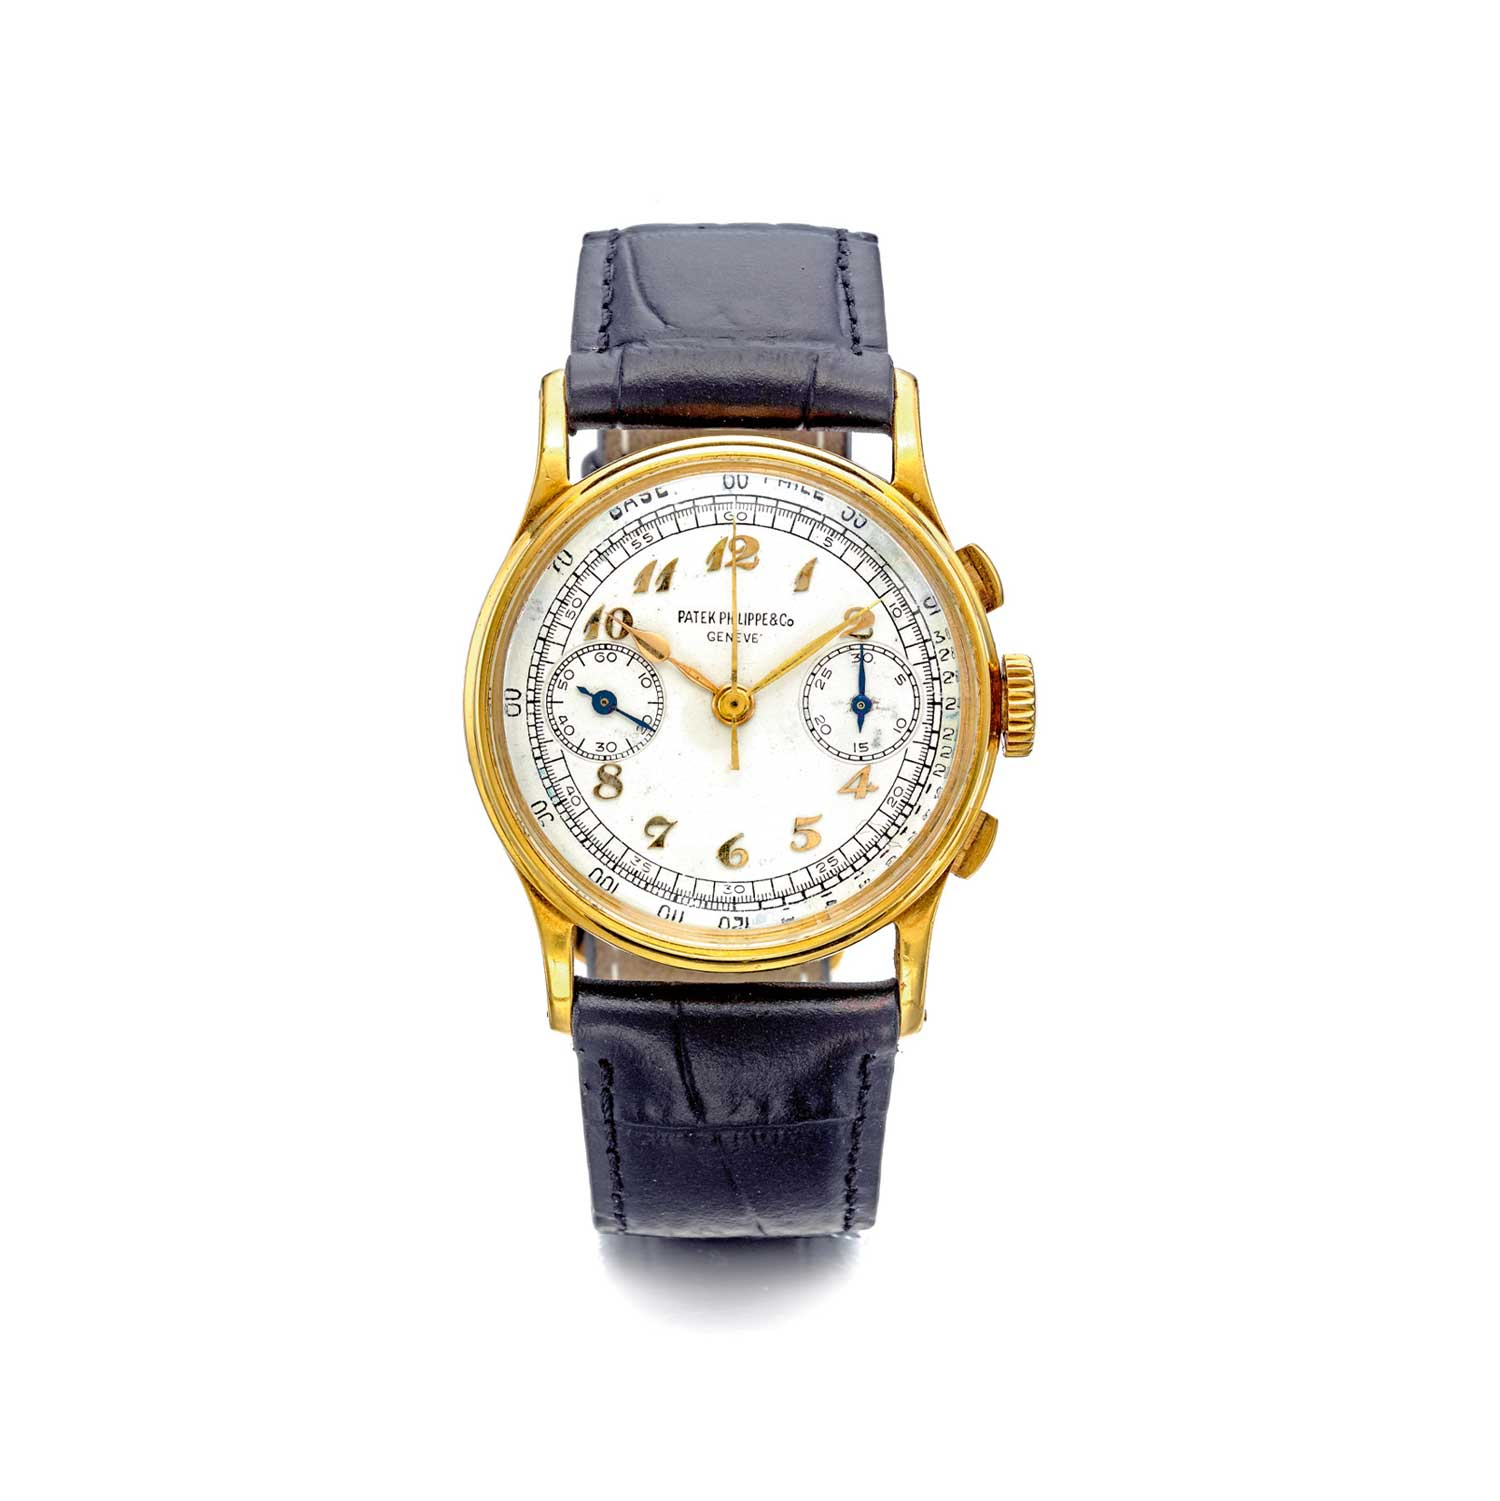 1945 Patek Philippe ref. 130 yellow gold chronograph with applied Breguet hour markers (Image: Sothebys.com)